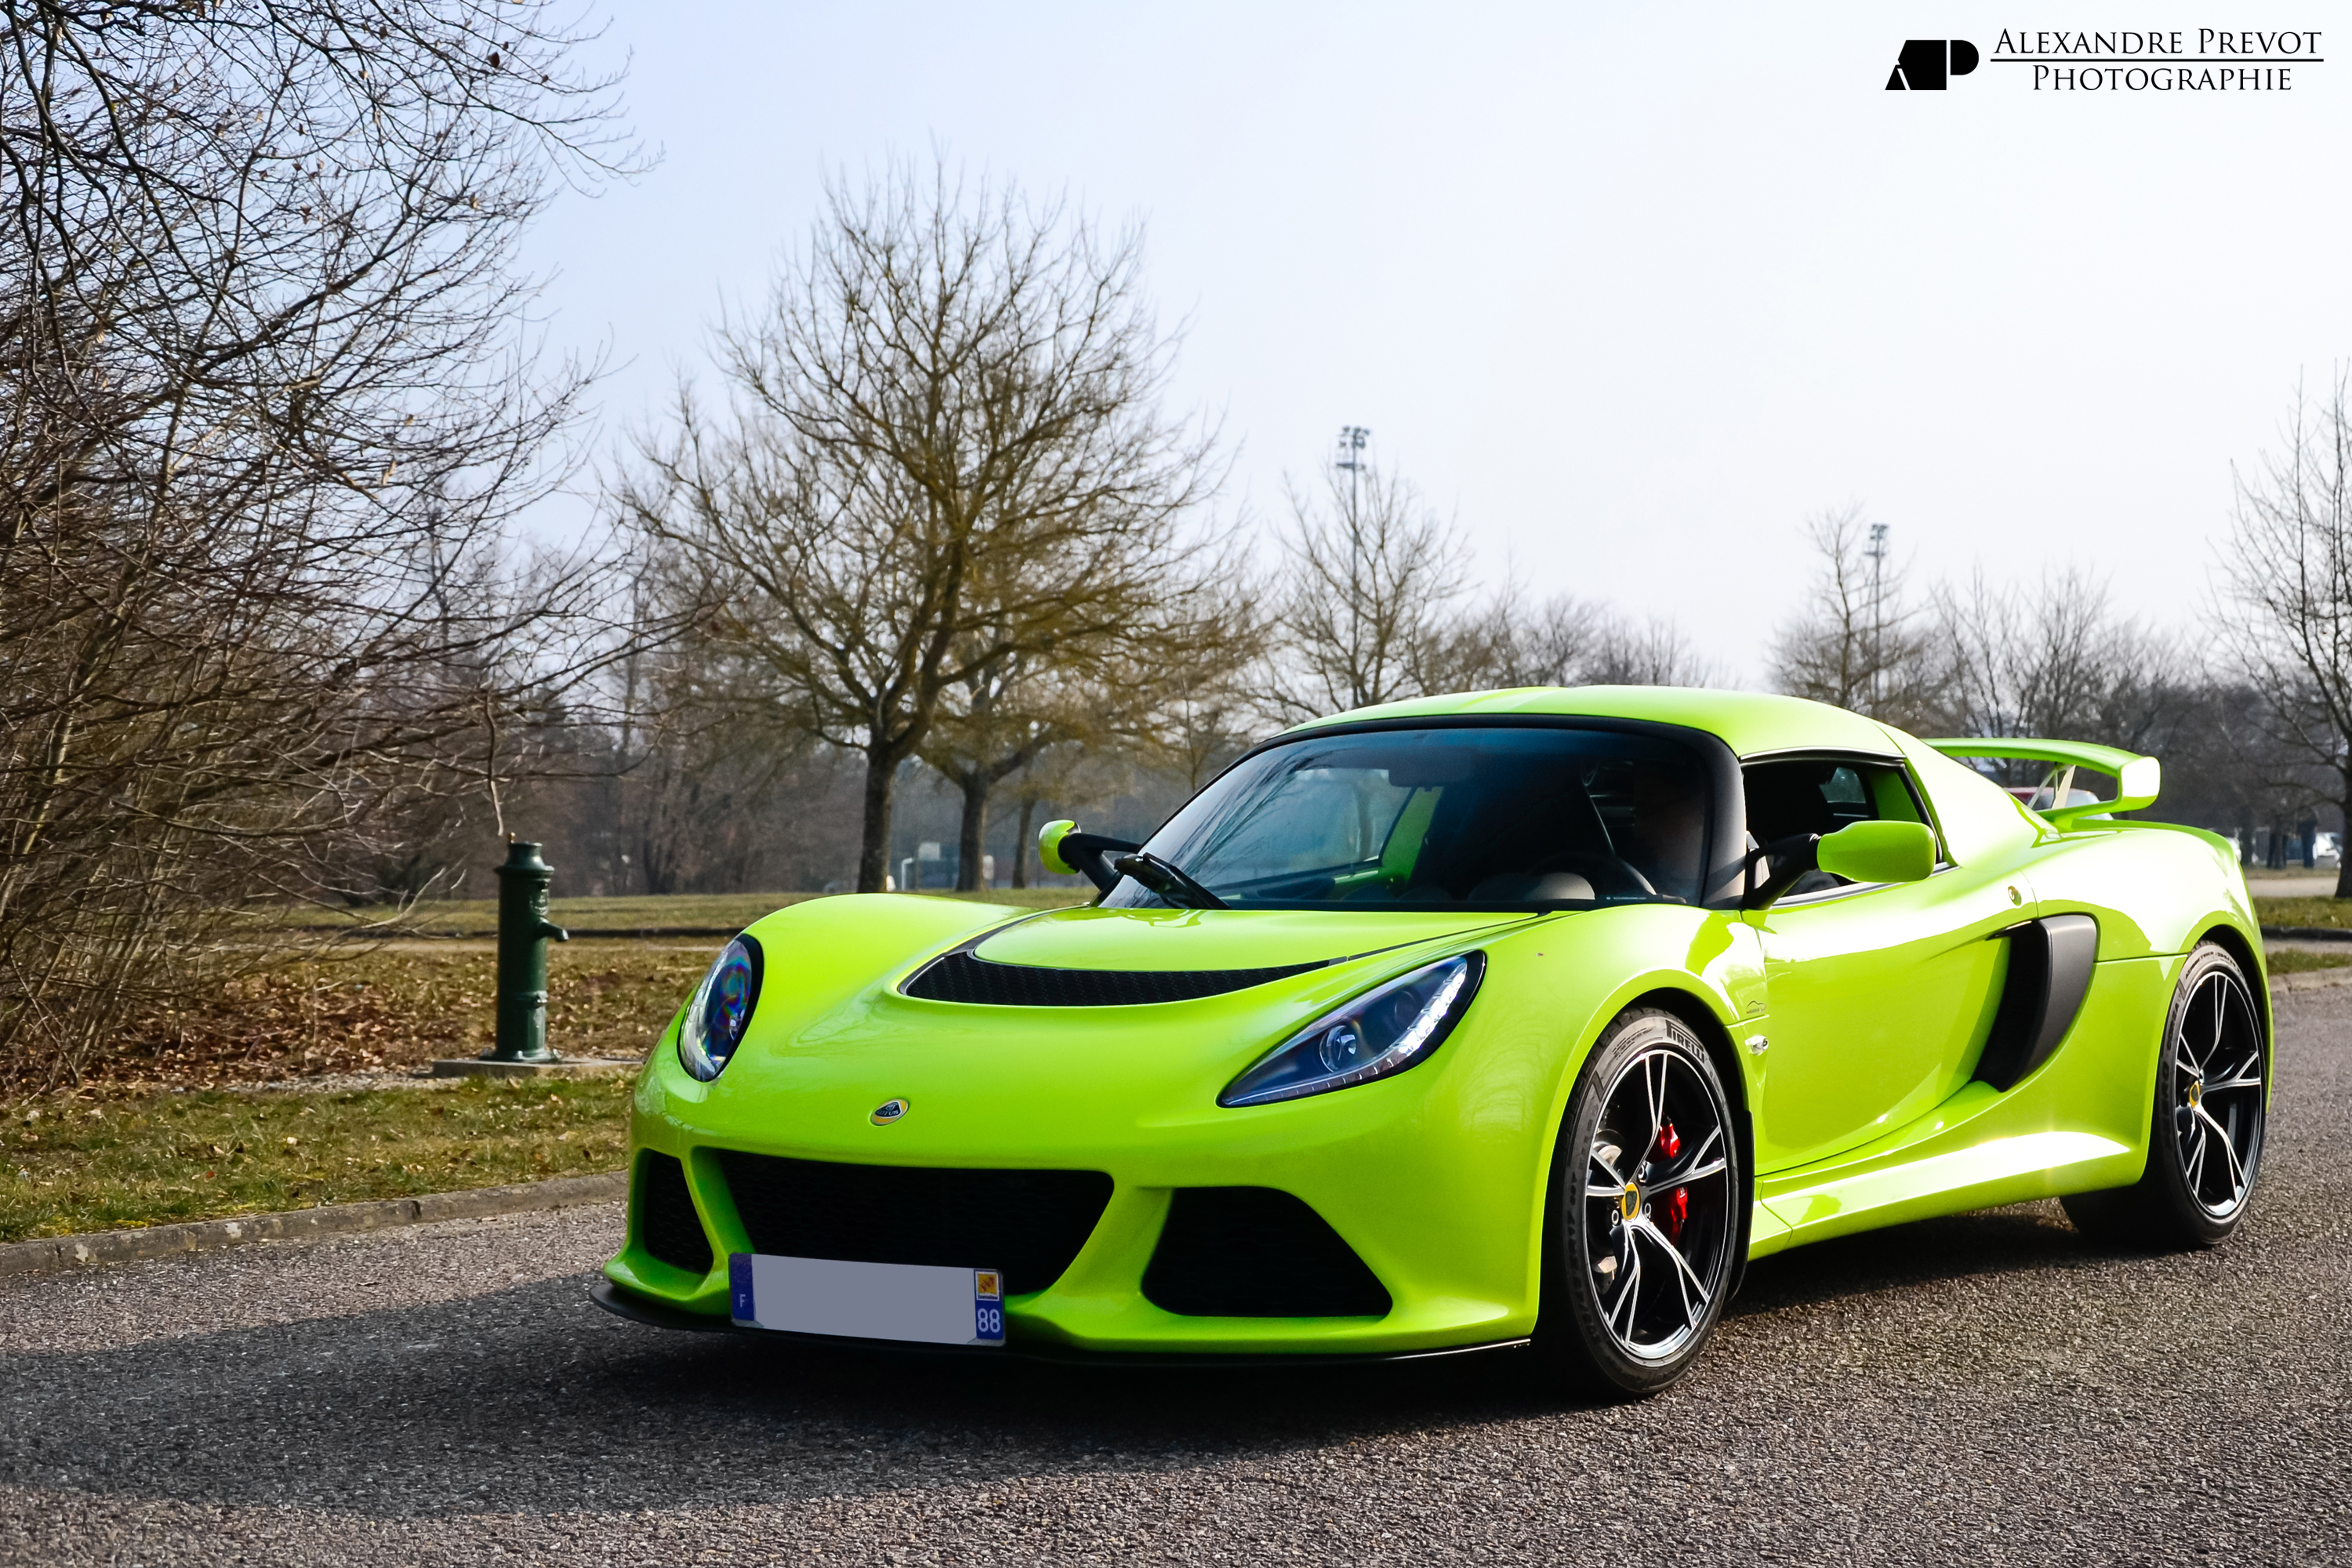 file lotus exige s v6 flickr alexandre pr vot 4 jpg wikimedia commons. Black Bedroom Furniture Sets. Home Design Ideas